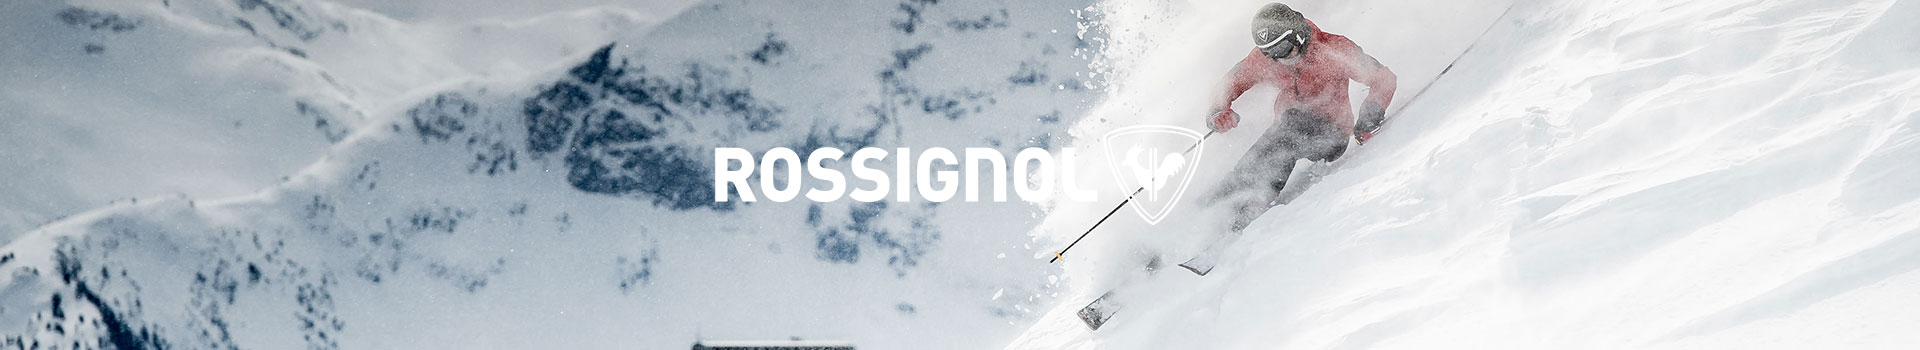 Shop Rossignol Skis, Ski Gear, and Winter Outerwear at your local Source For Sports winter clothing and ski store